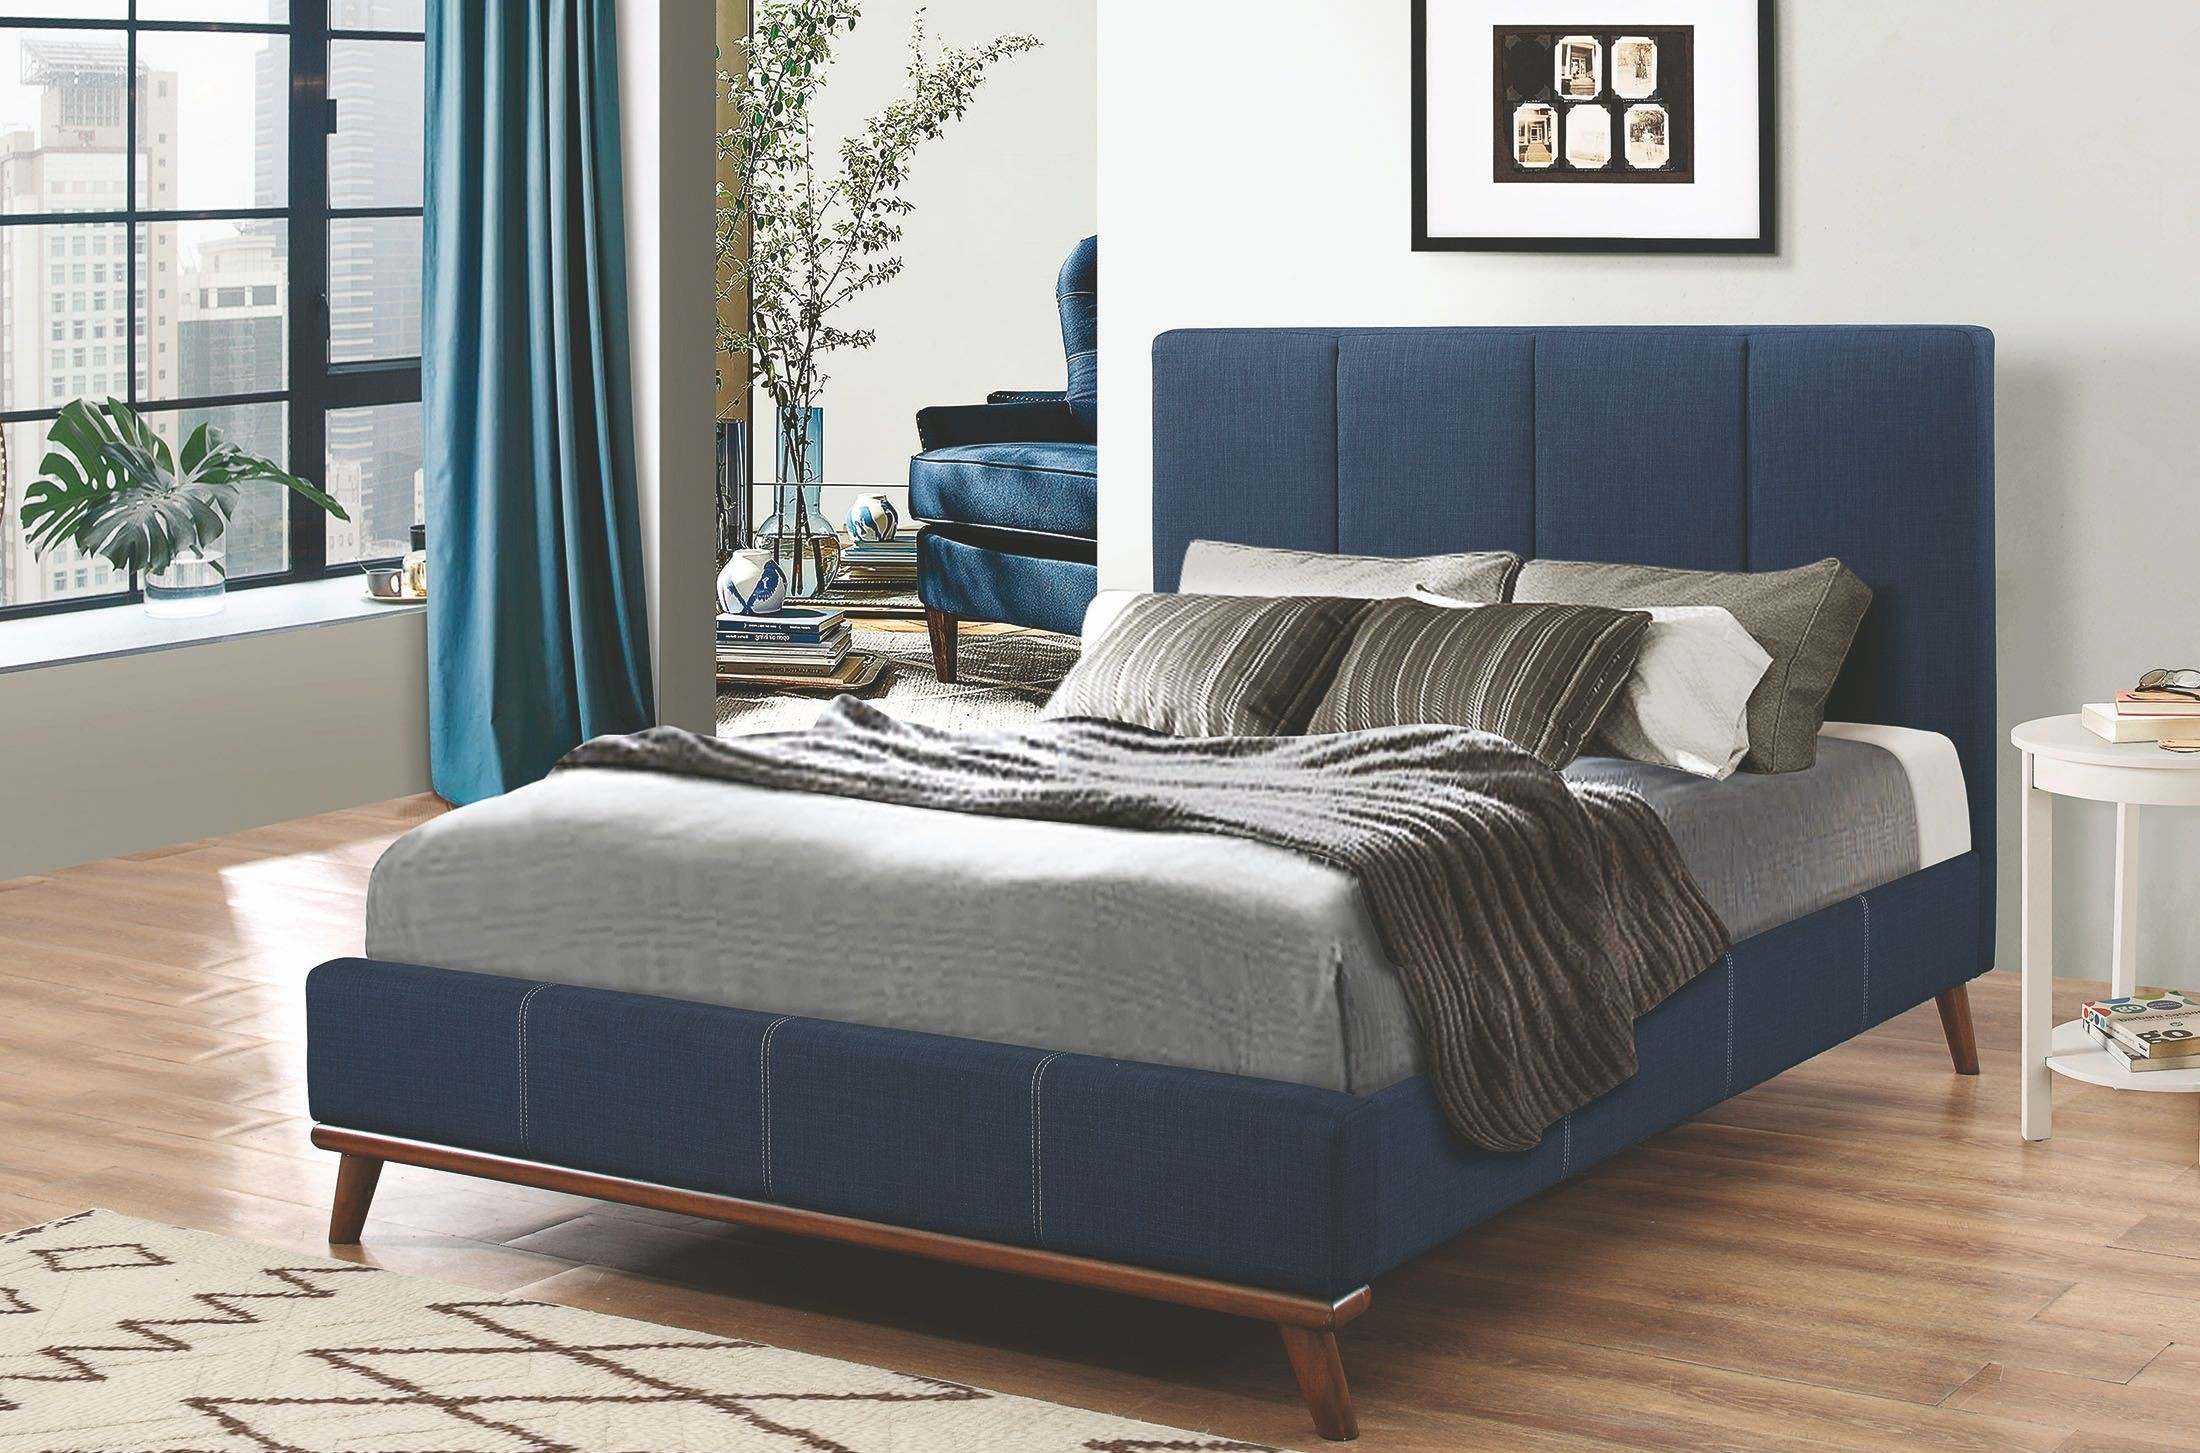 Charity Dark Blue King Upholstered Platform Bed From